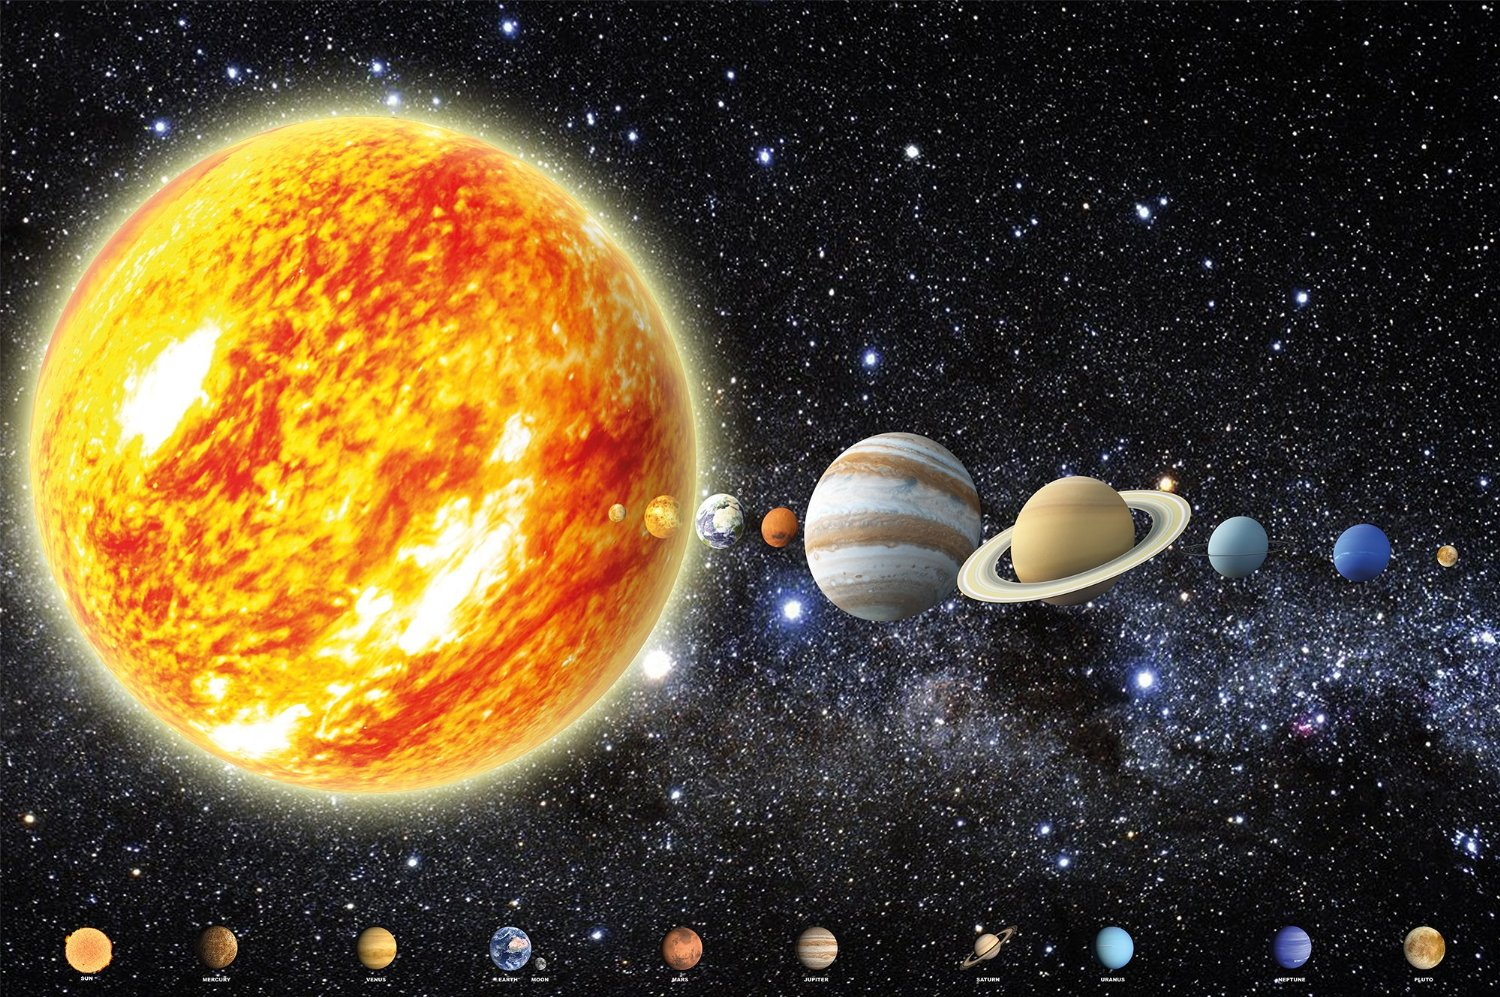 Solar System with Planets Picture Wallpaper – Galaxy Universe Space Wallpaper – Stars Sky Moon Earth – Poster Xxl Wall Decoration Great Art